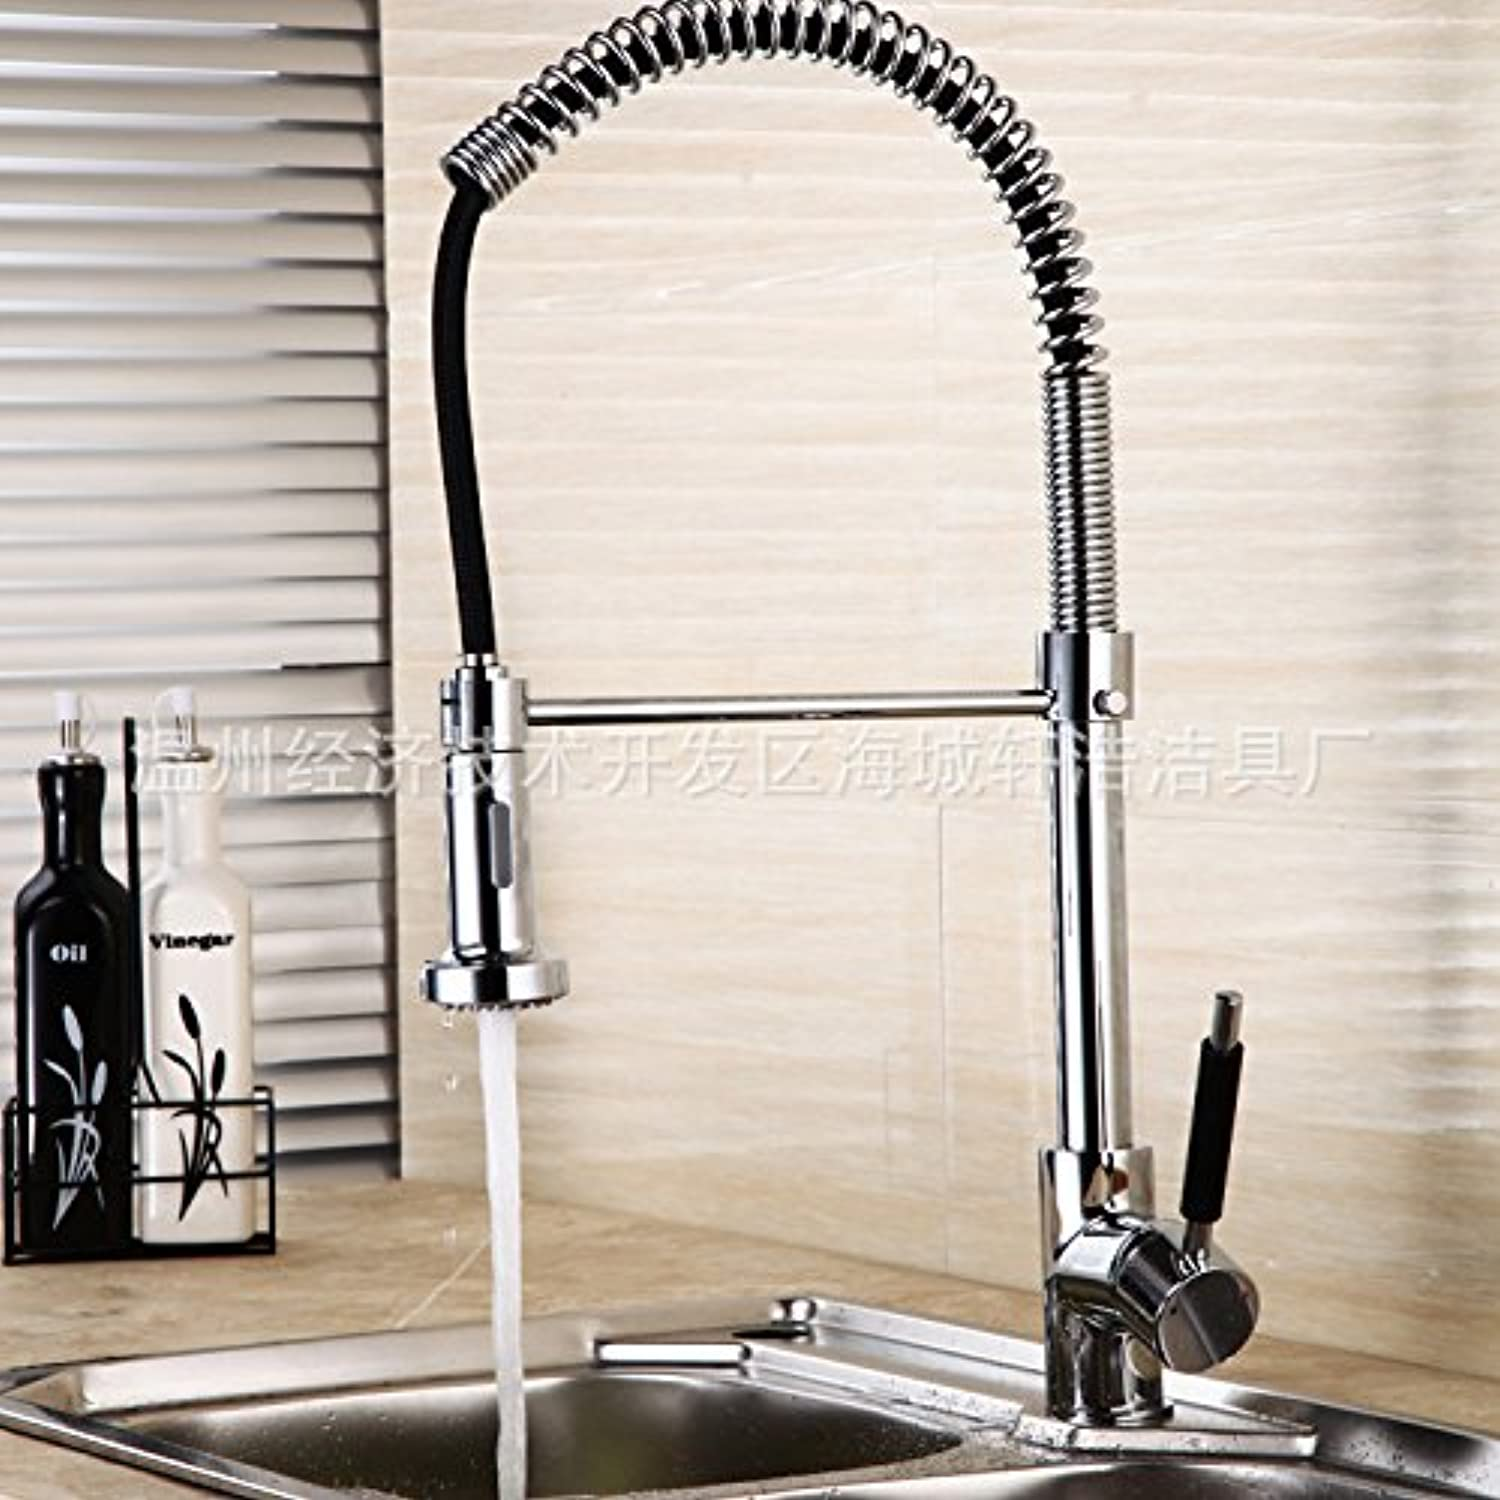 redOOY Taps Faucet Kitchen Kitchen Faucet Hot And Cold Pull Faucet Kitchen Faucet Double Sink redating Single Handle Spring Wire Drawing